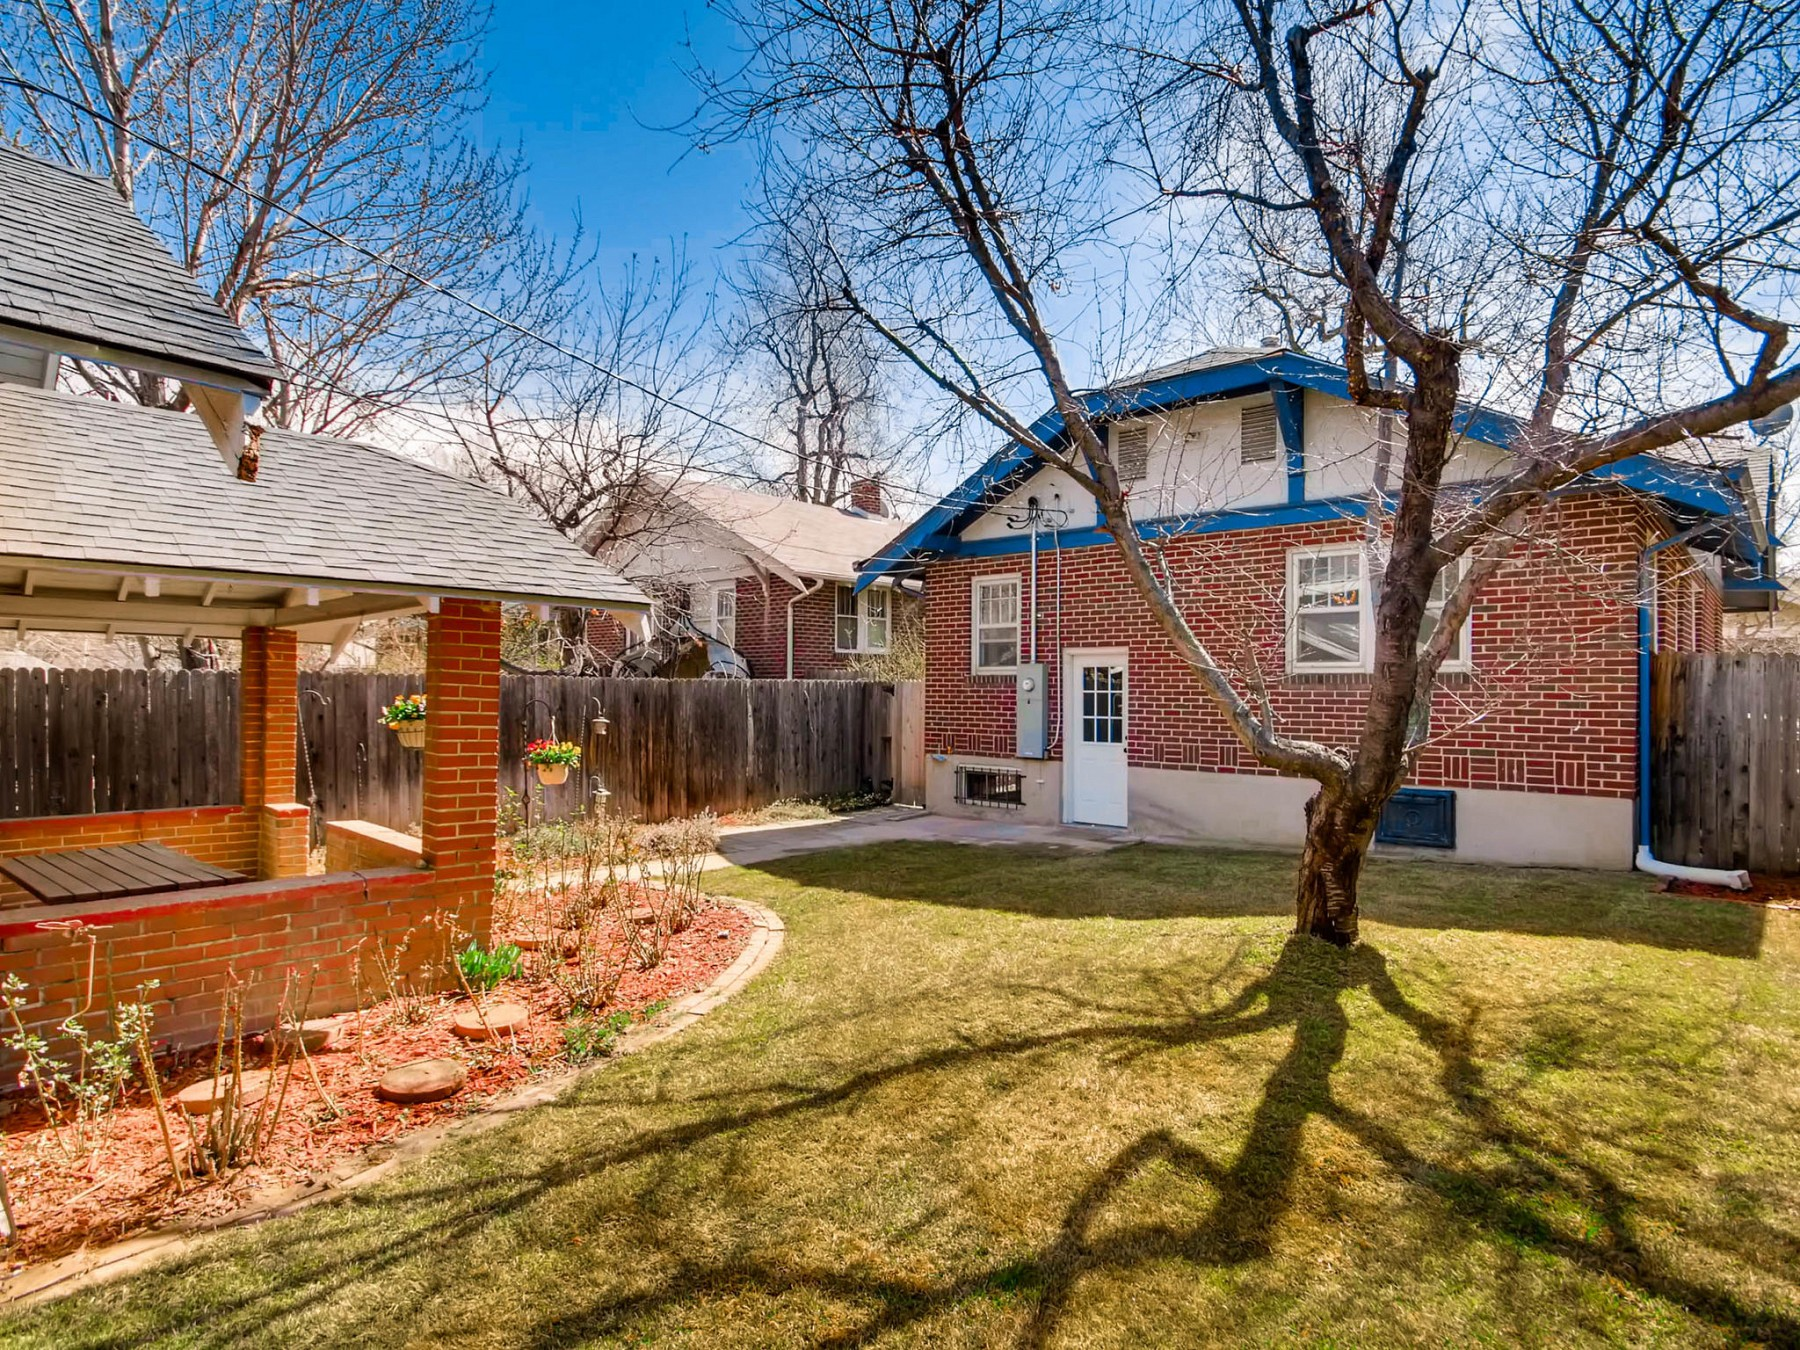 3455 West 35th Avenue, Denver, CO 80211